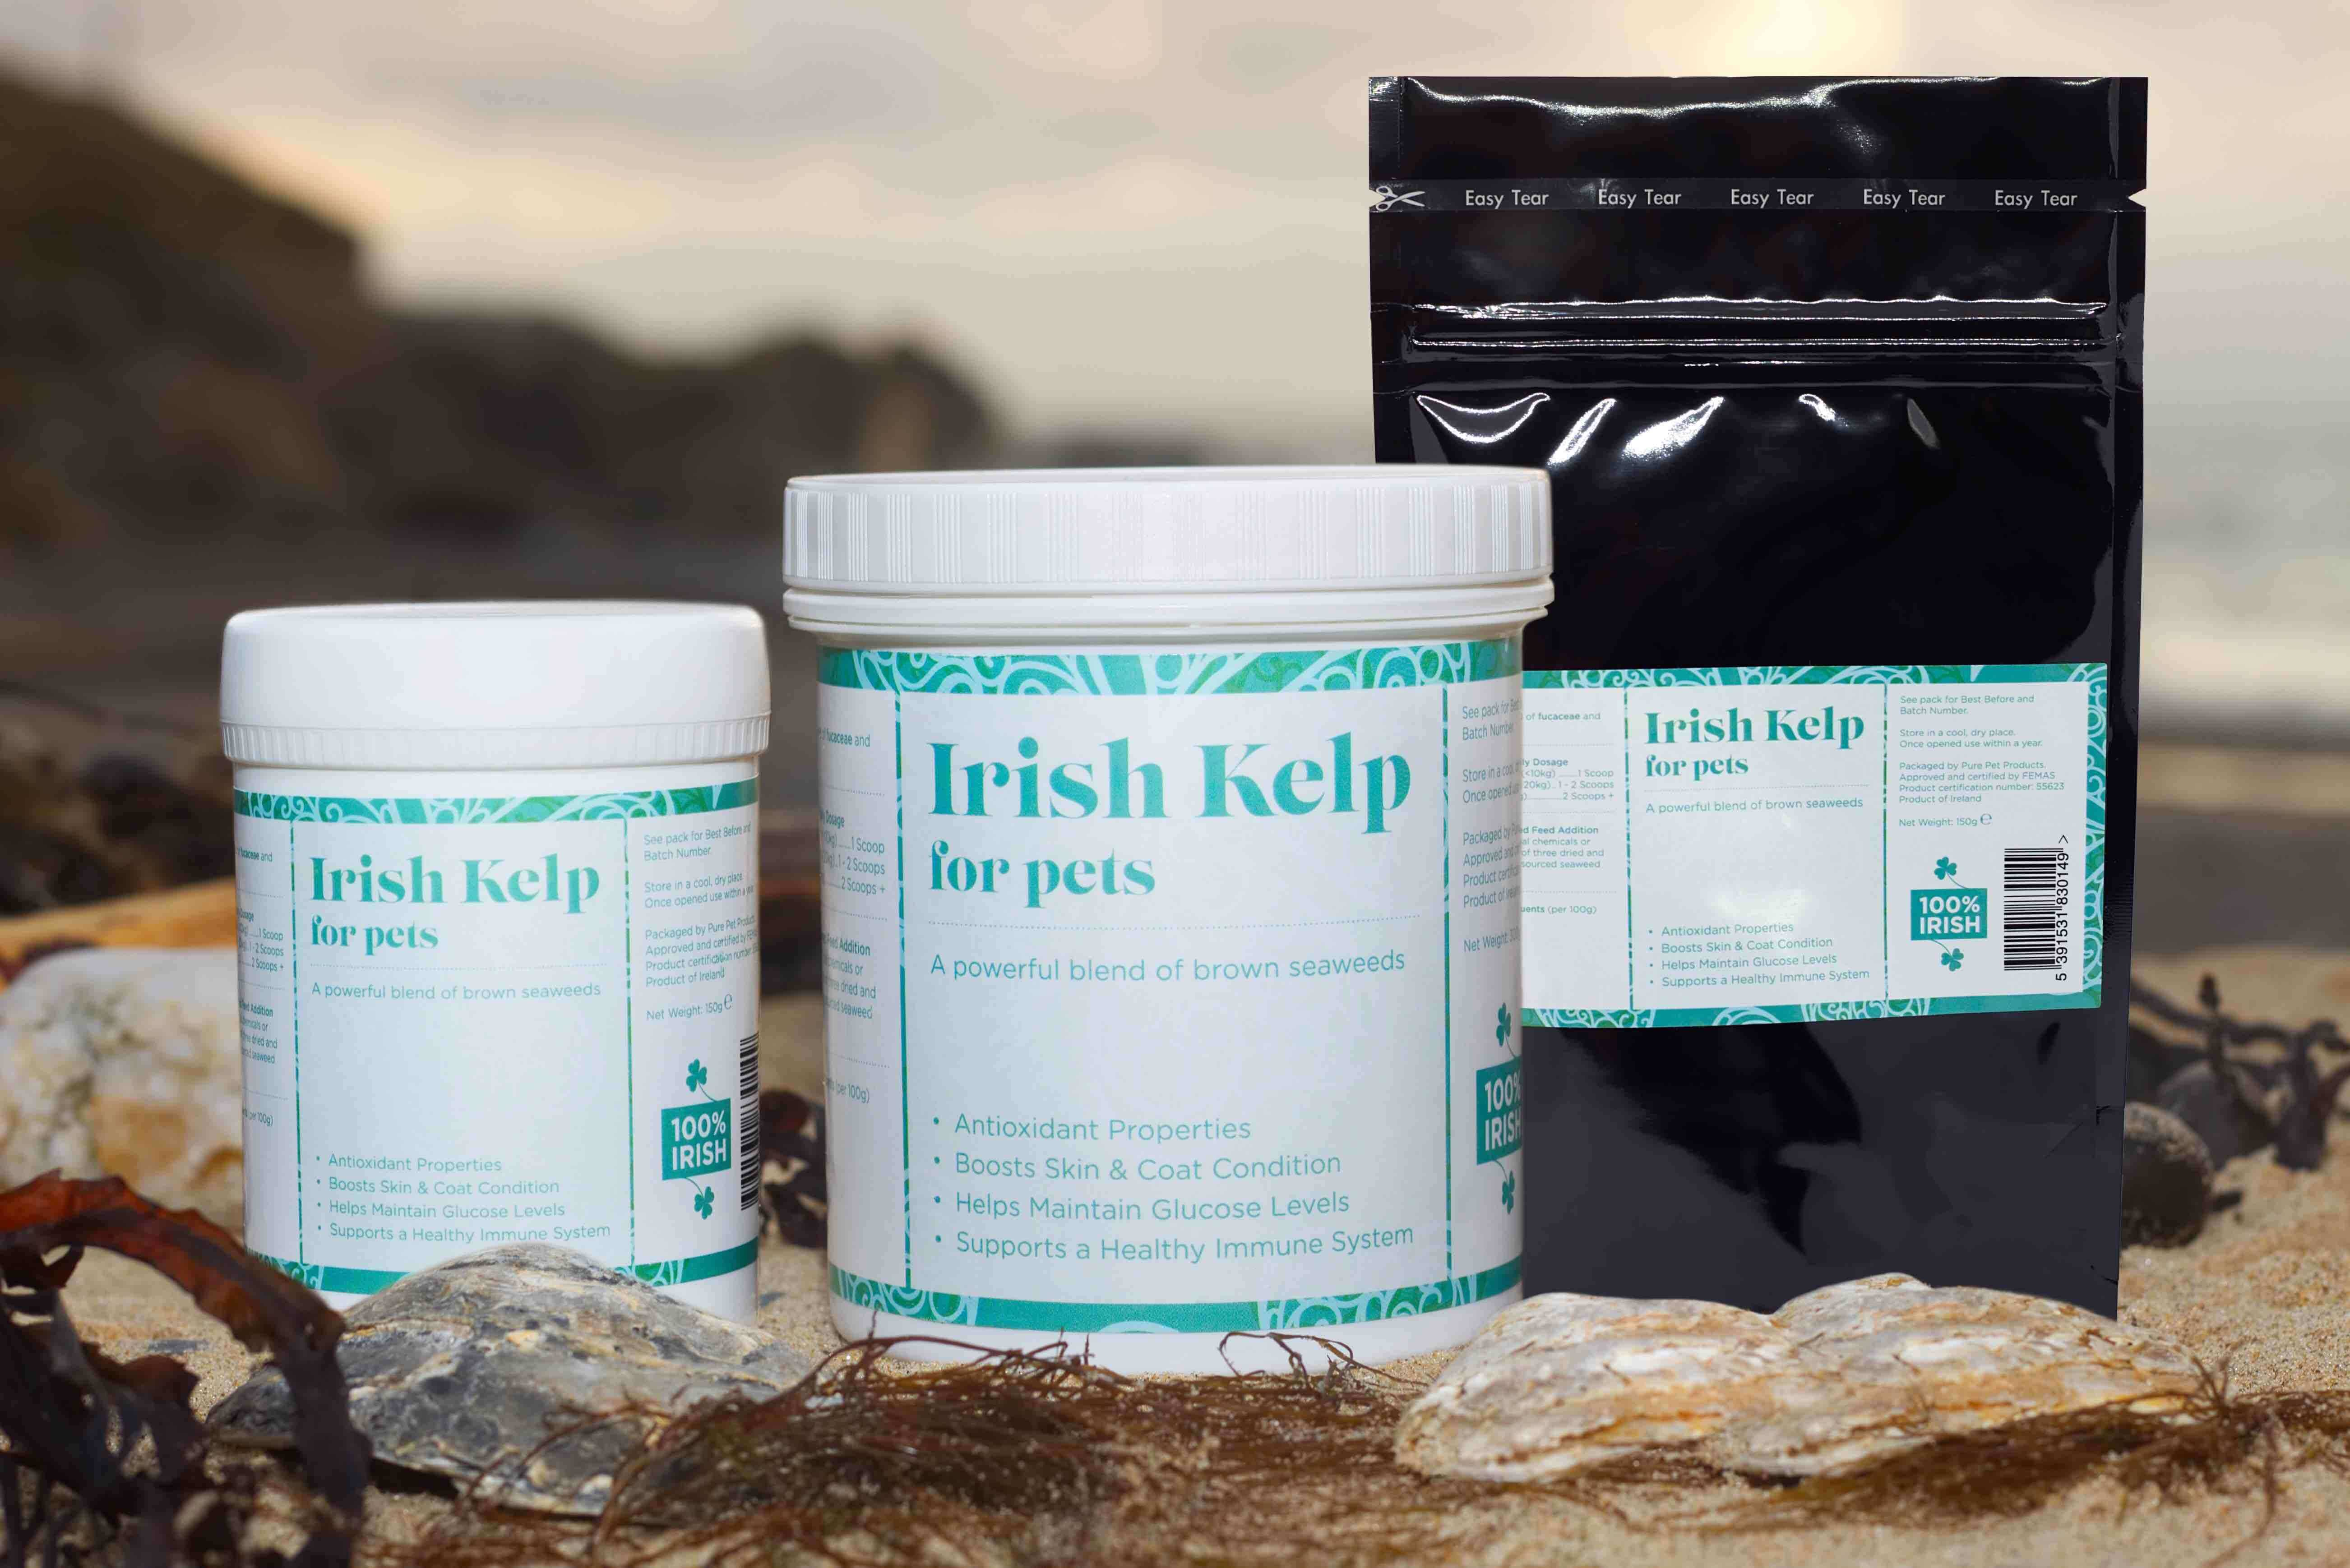 Irish kelp for dogs